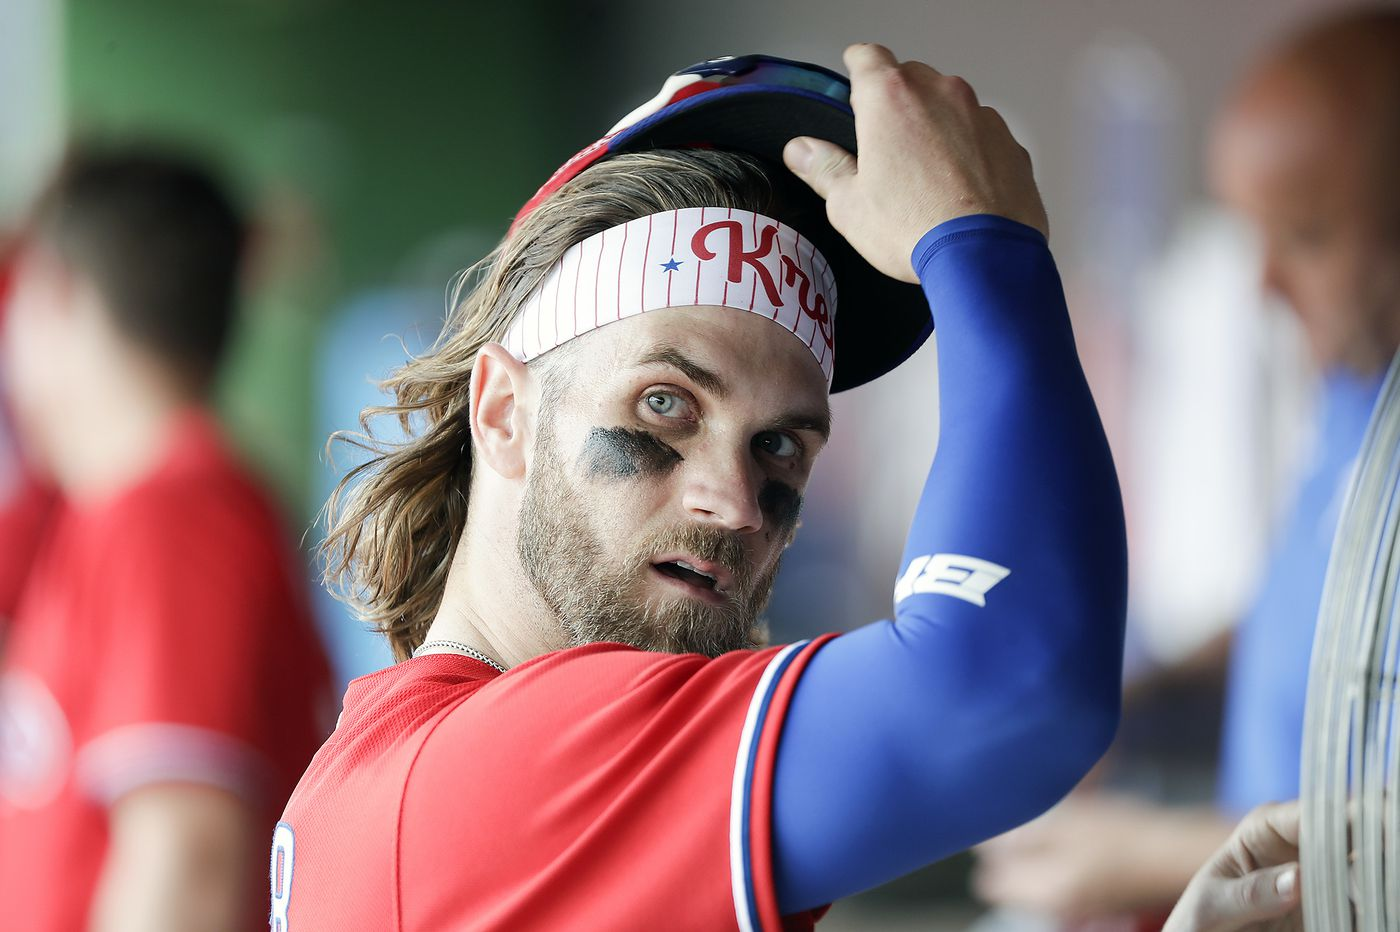 Bryce Harper is going to be on the Phillies for 12 more years, so he keeps tabs on the prospects